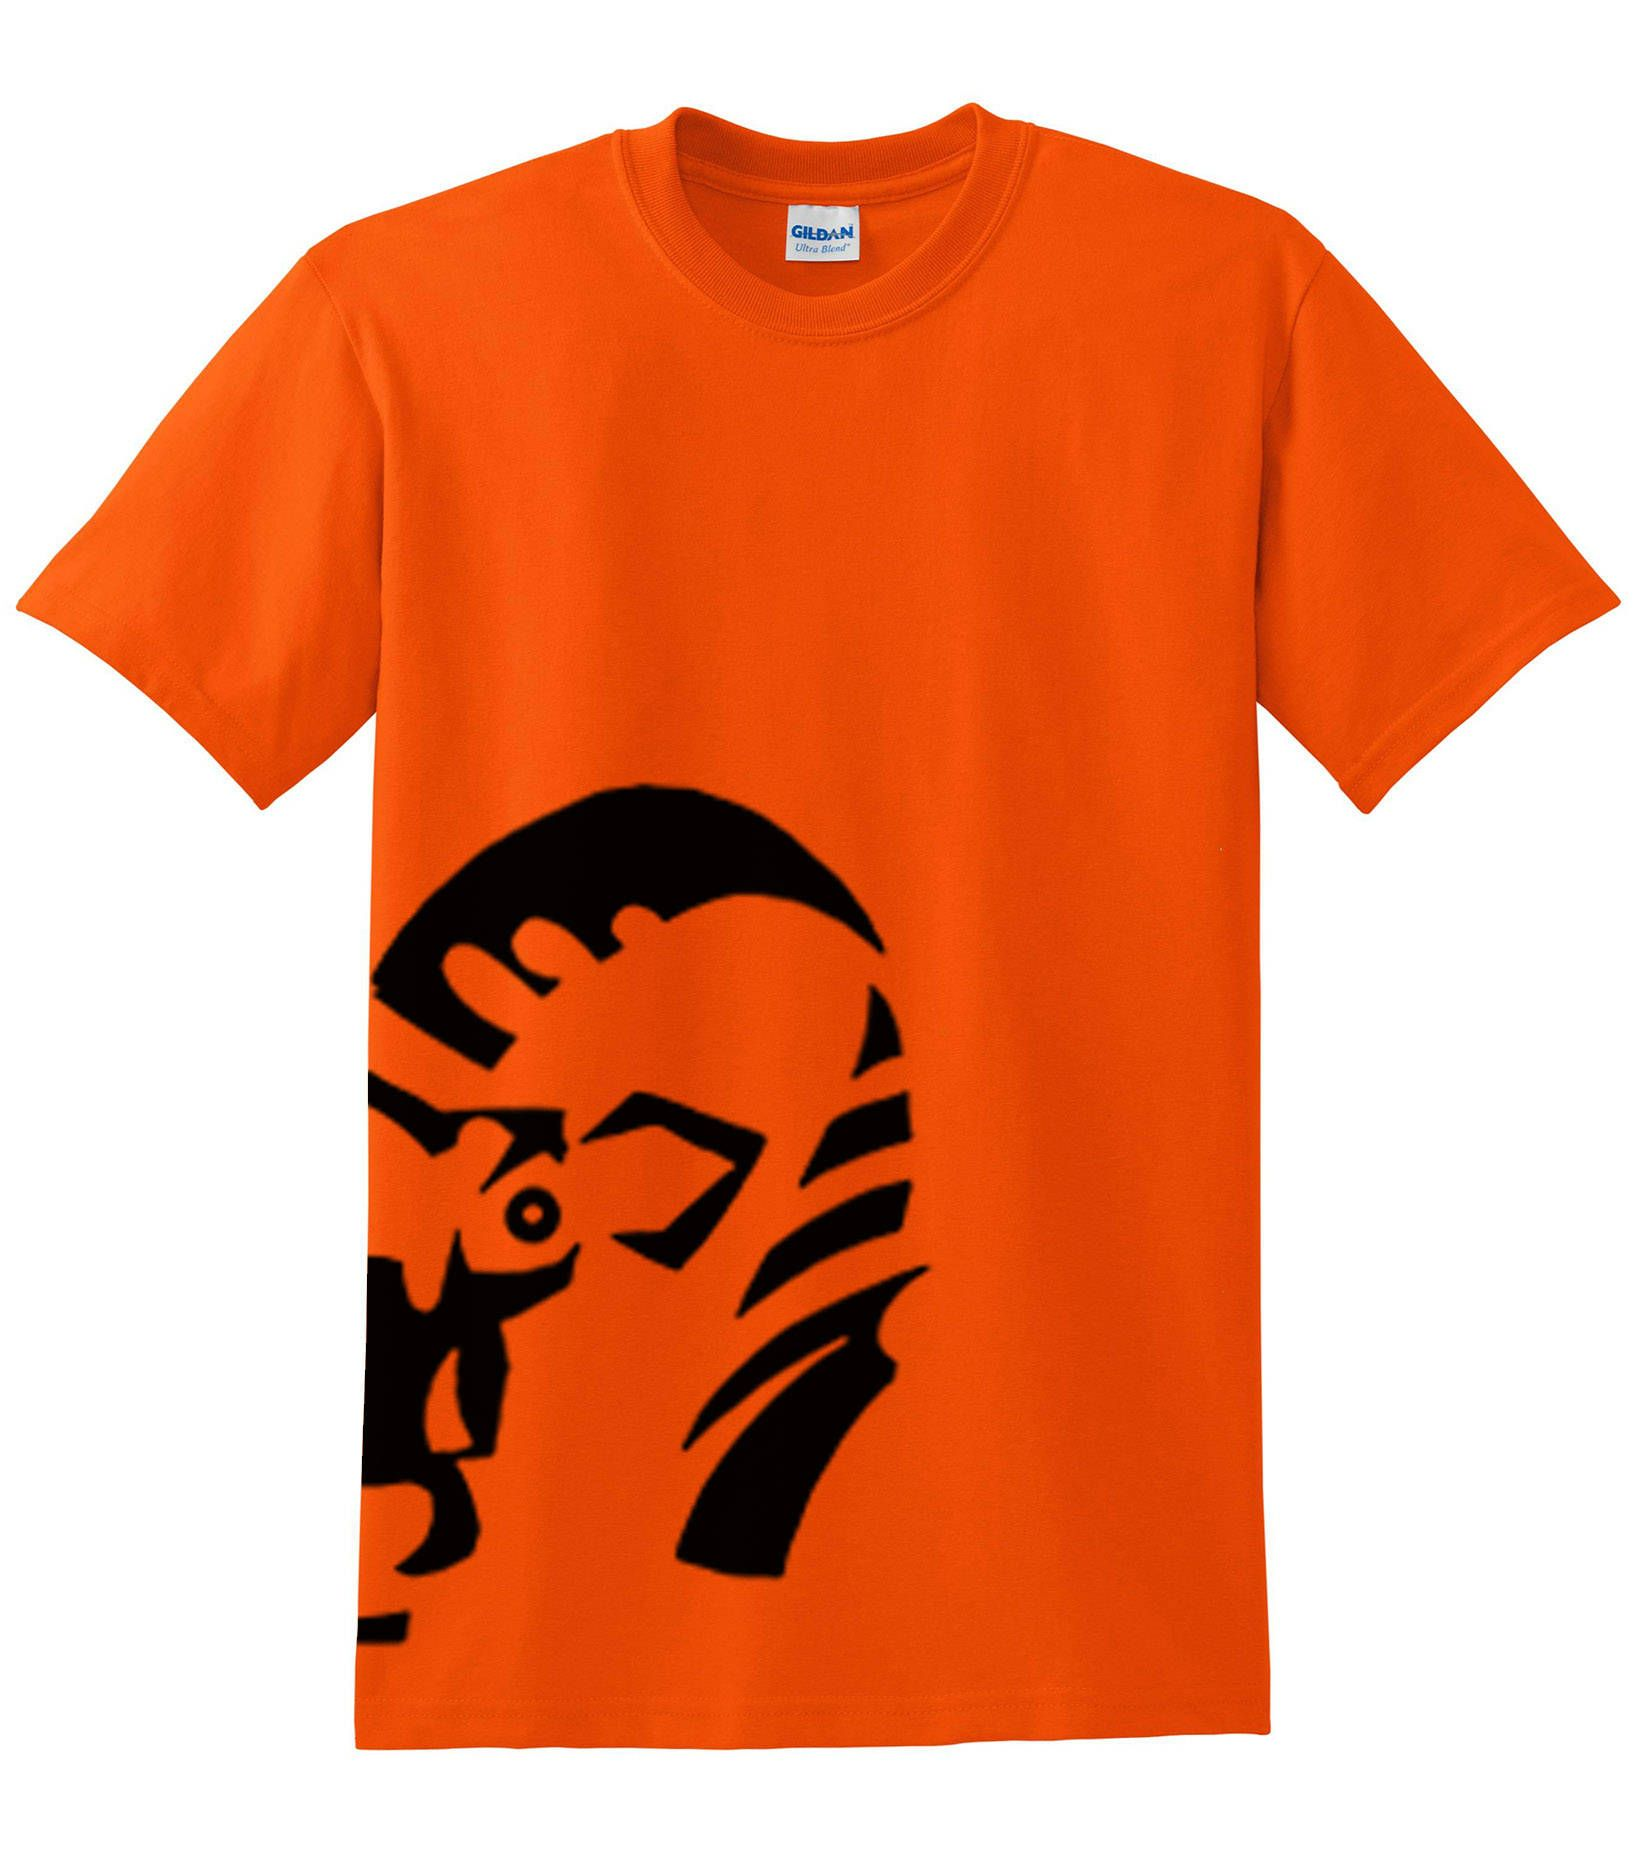 Rockford Rams Michigan Side Wrap Around Shirt More Free